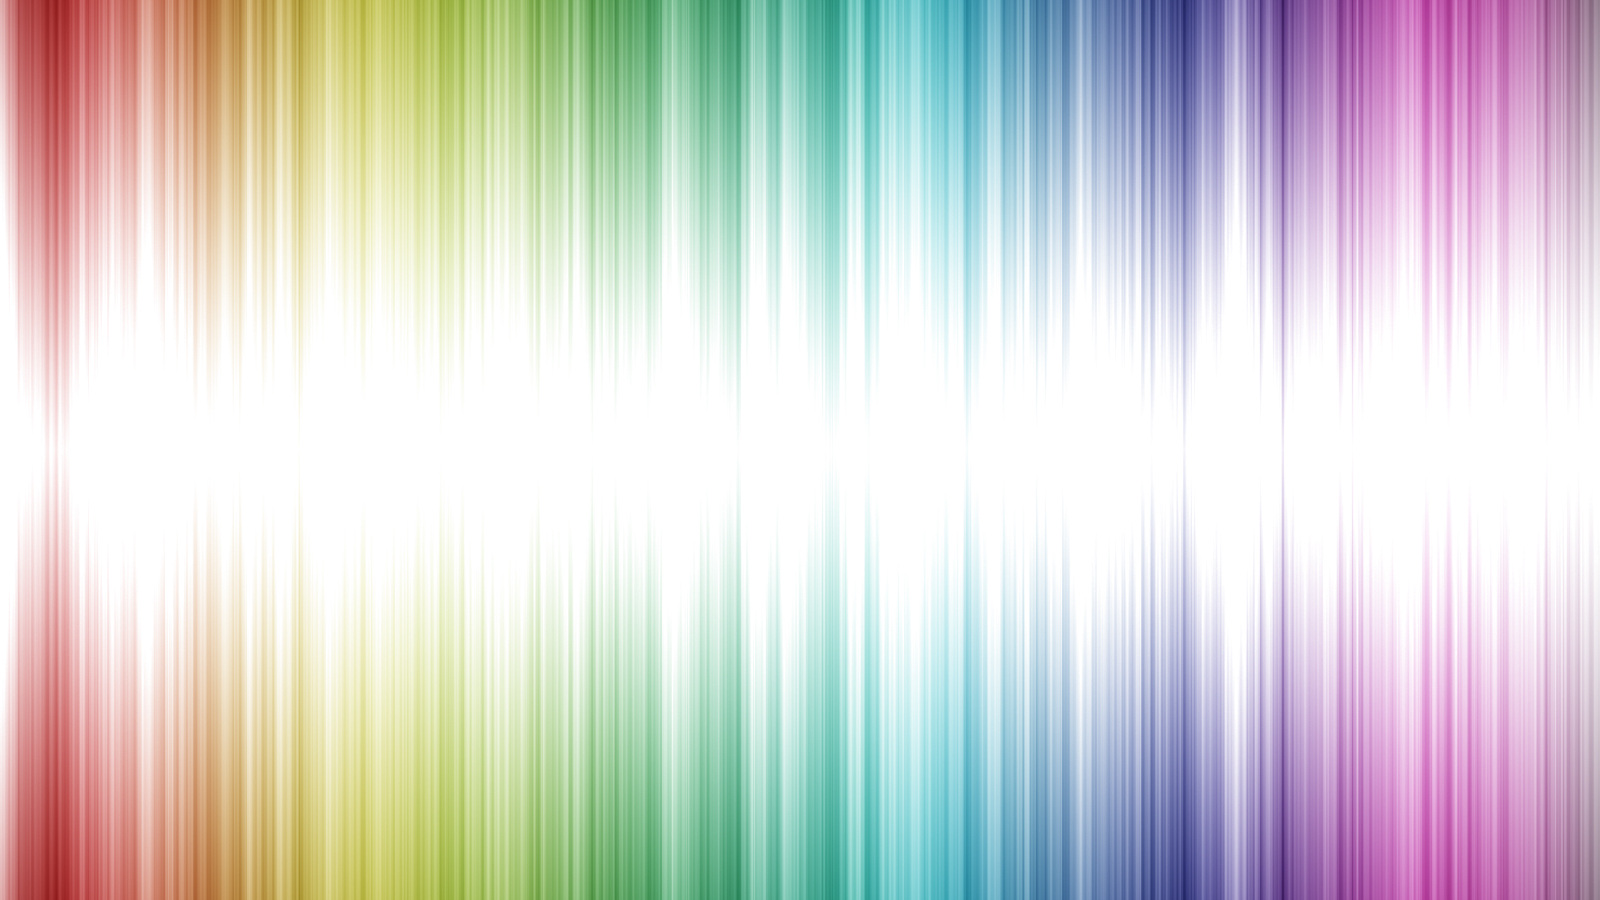 Rainbow Twitter Backgrounds Free Downloads